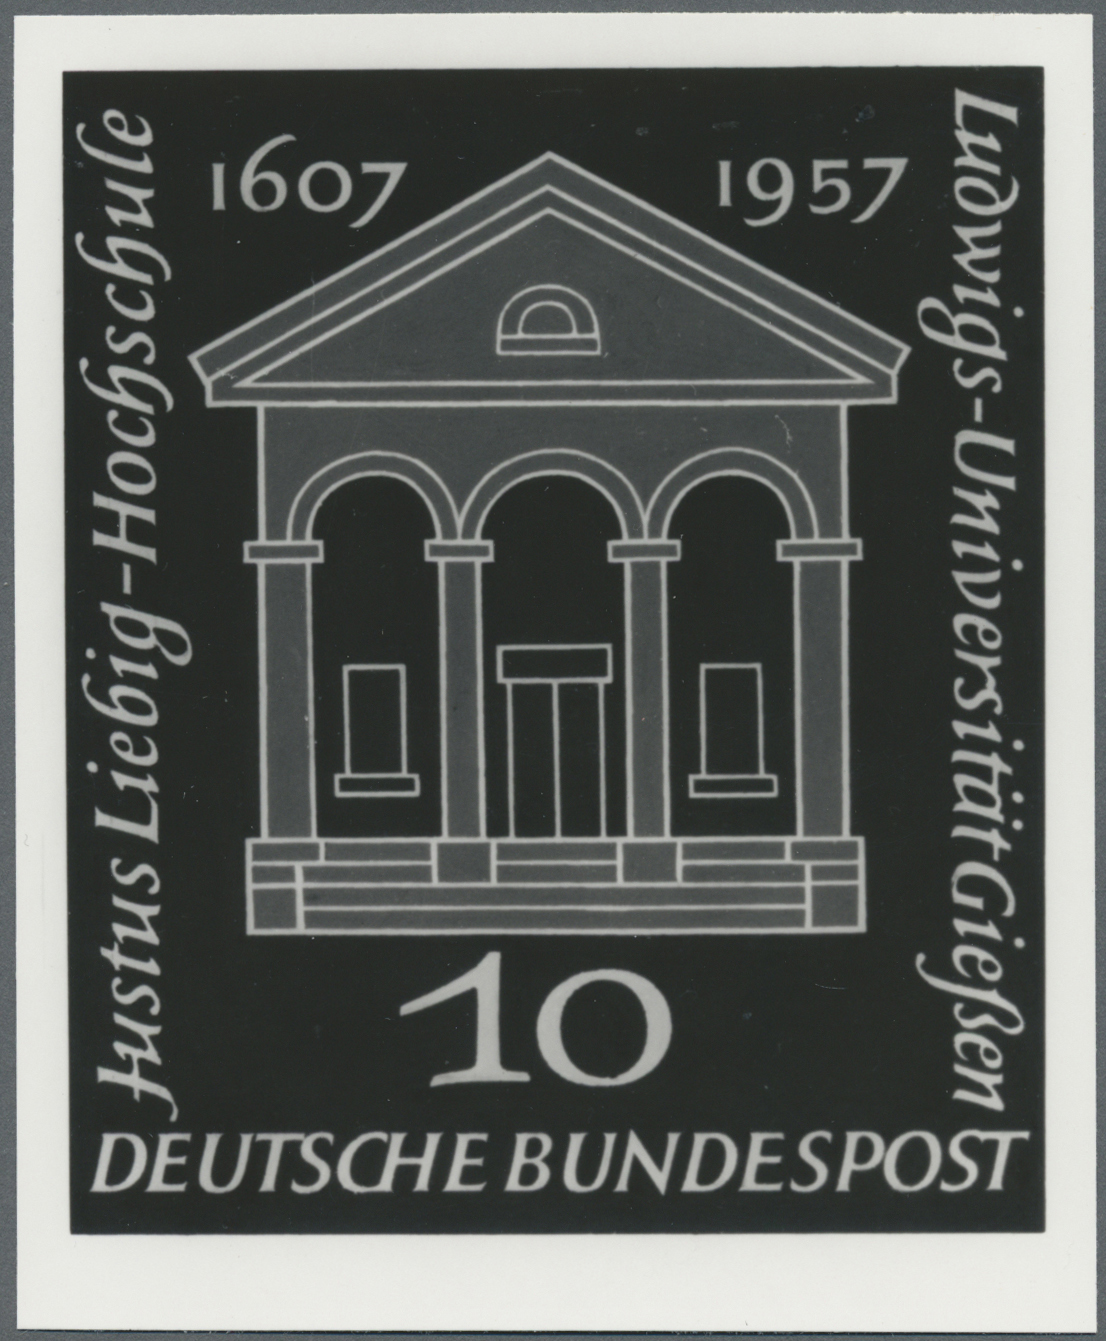 Lot 06218 - Thematik: Architektur / architecture  -  Auktionshaus Christoph Gärtner GmbH & Co. KG Special Auction 26.- 28. May 2020 Day 3 Collections - Thematics and Picture Post Cards